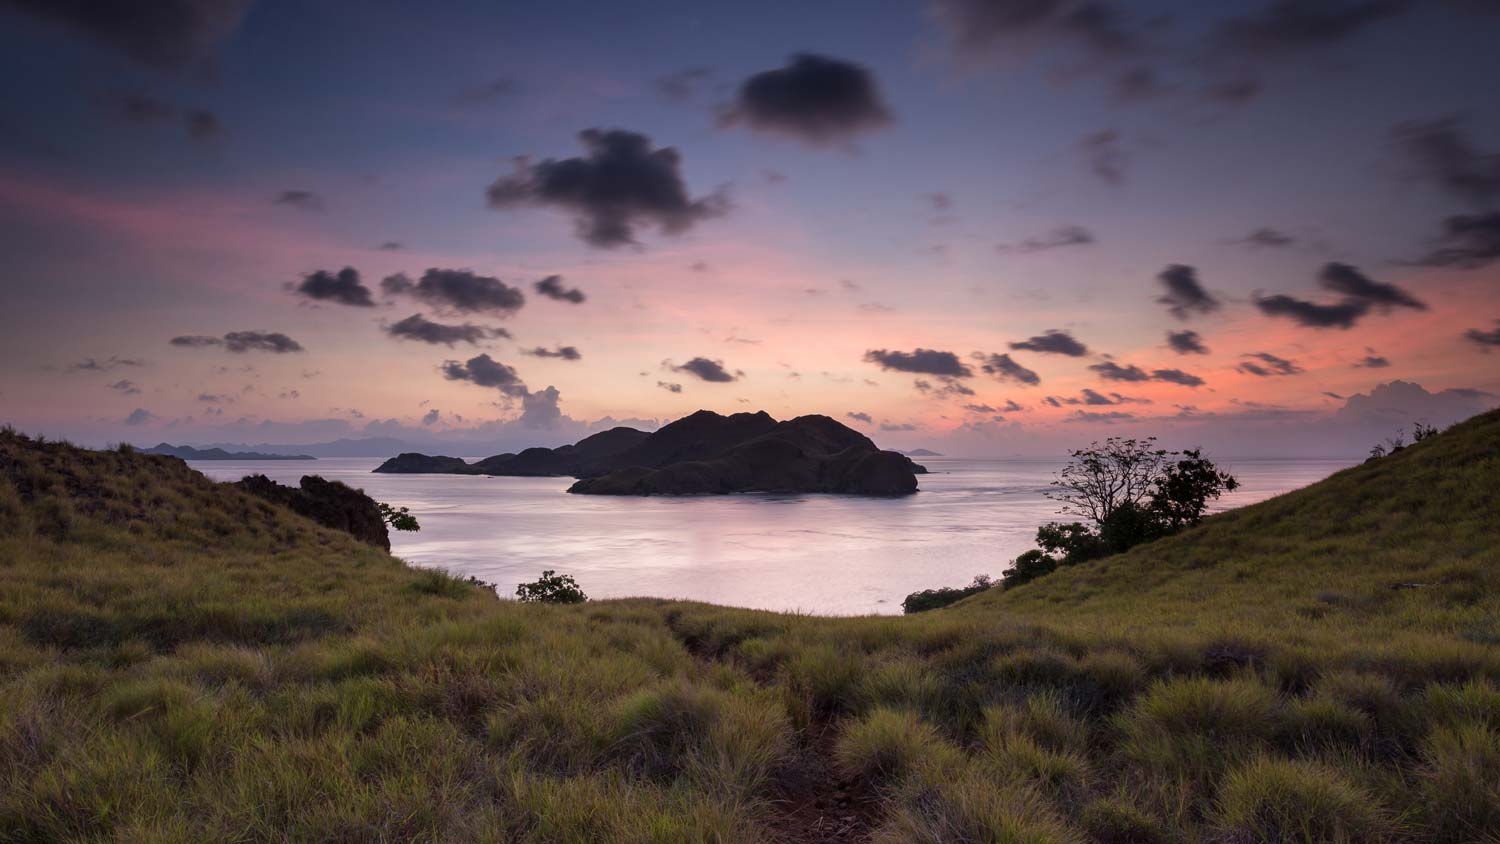 Sunset-at-komodo-national-park.jpg